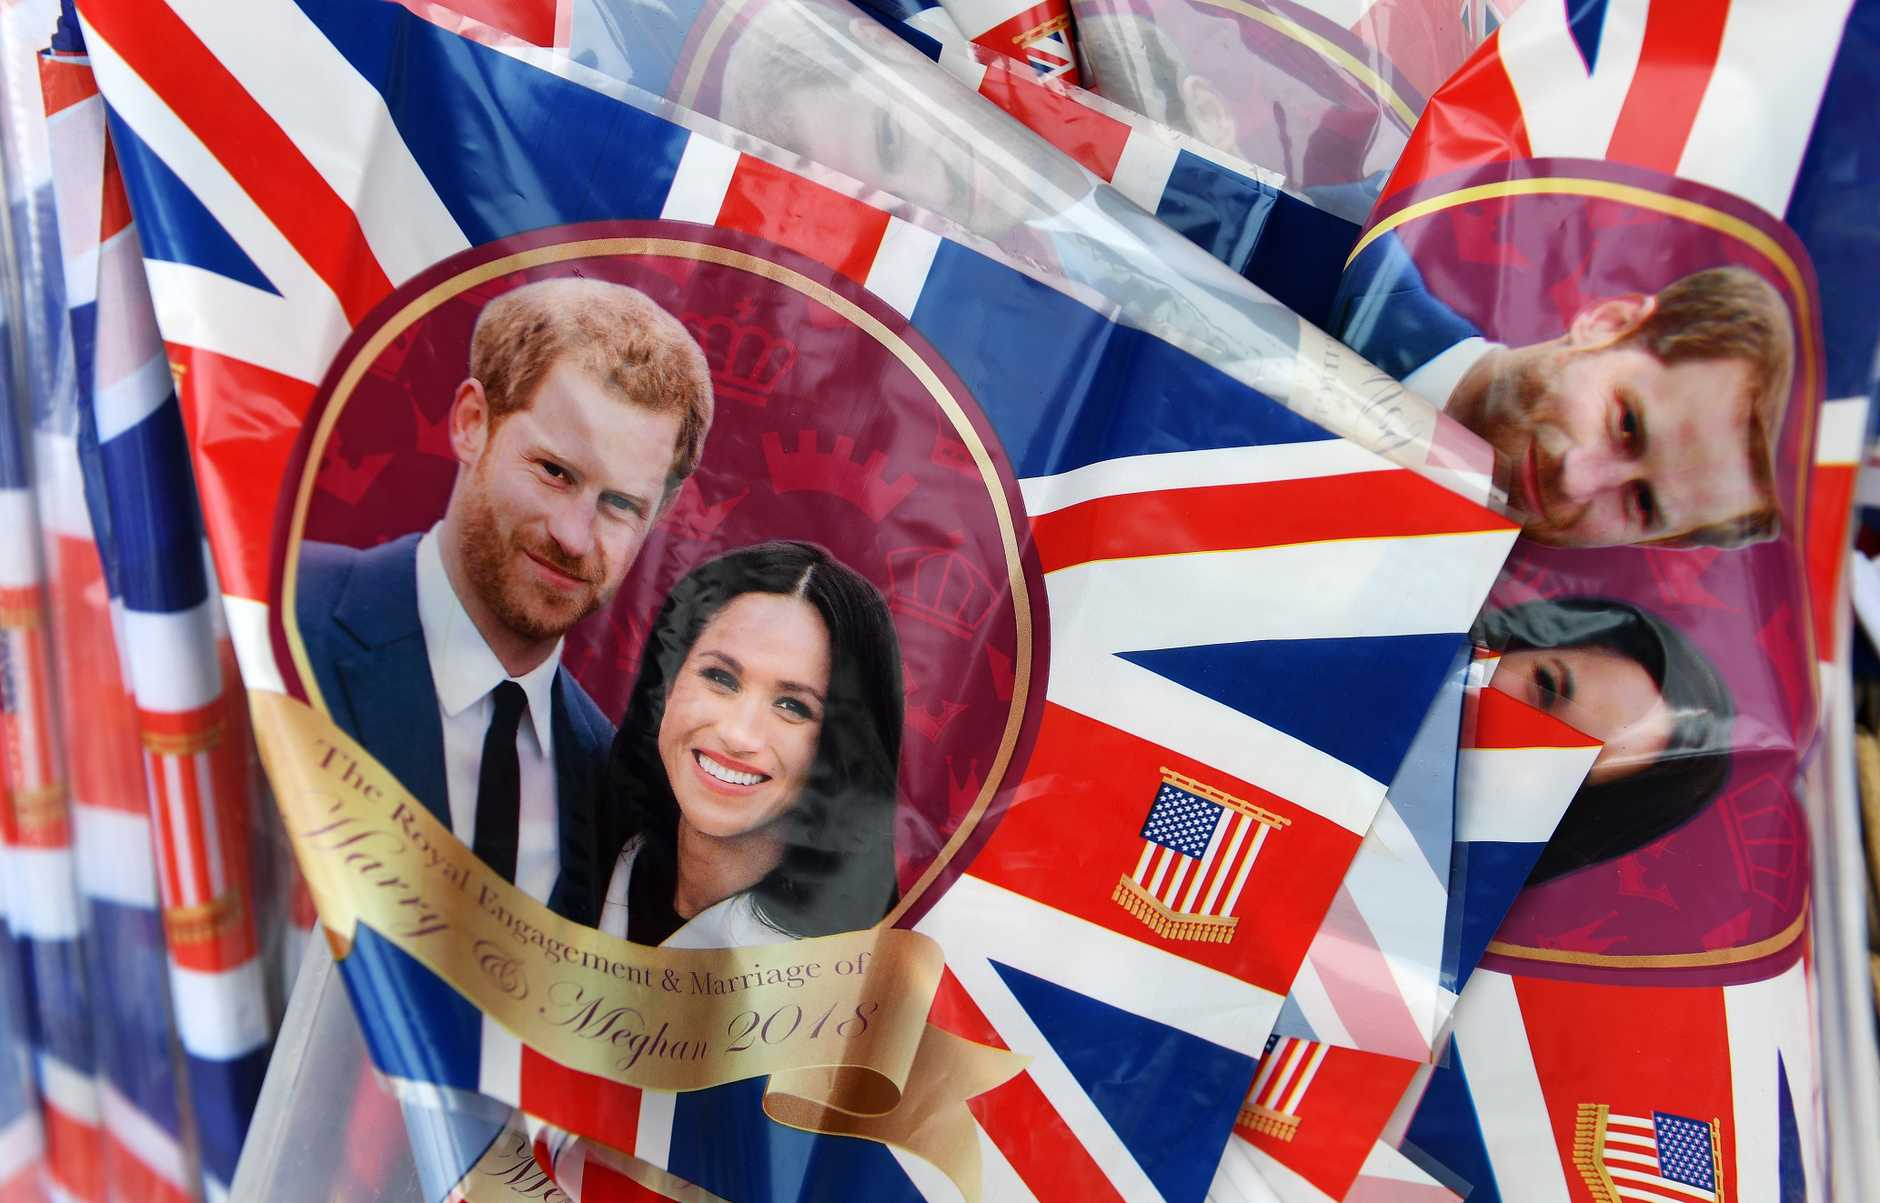 Royal wedding plastic flags with Prince Harry and Meghan Markle on sale at a store in Windsor, Britain. Windsor is preparing for the royal wedding of Prince Harry and Meghan Markle on May 19.